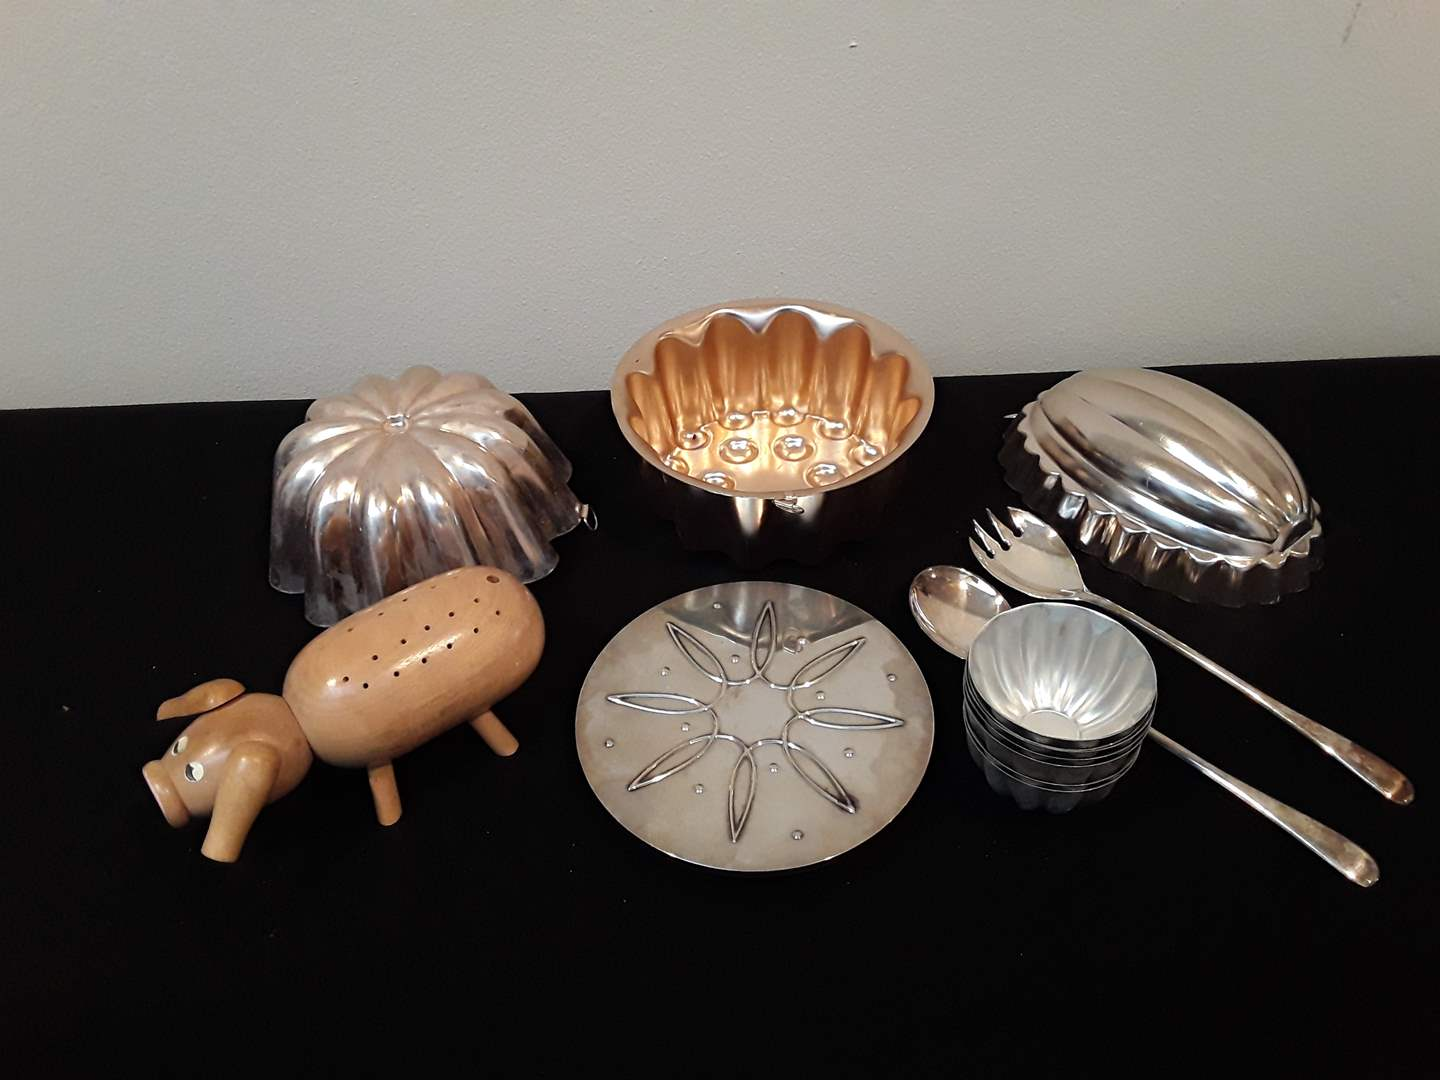 Lot # 102 - Italian Salad Server Set, Jello Molds, Wood Party Pig and Silver-Toned Trivet (main image)